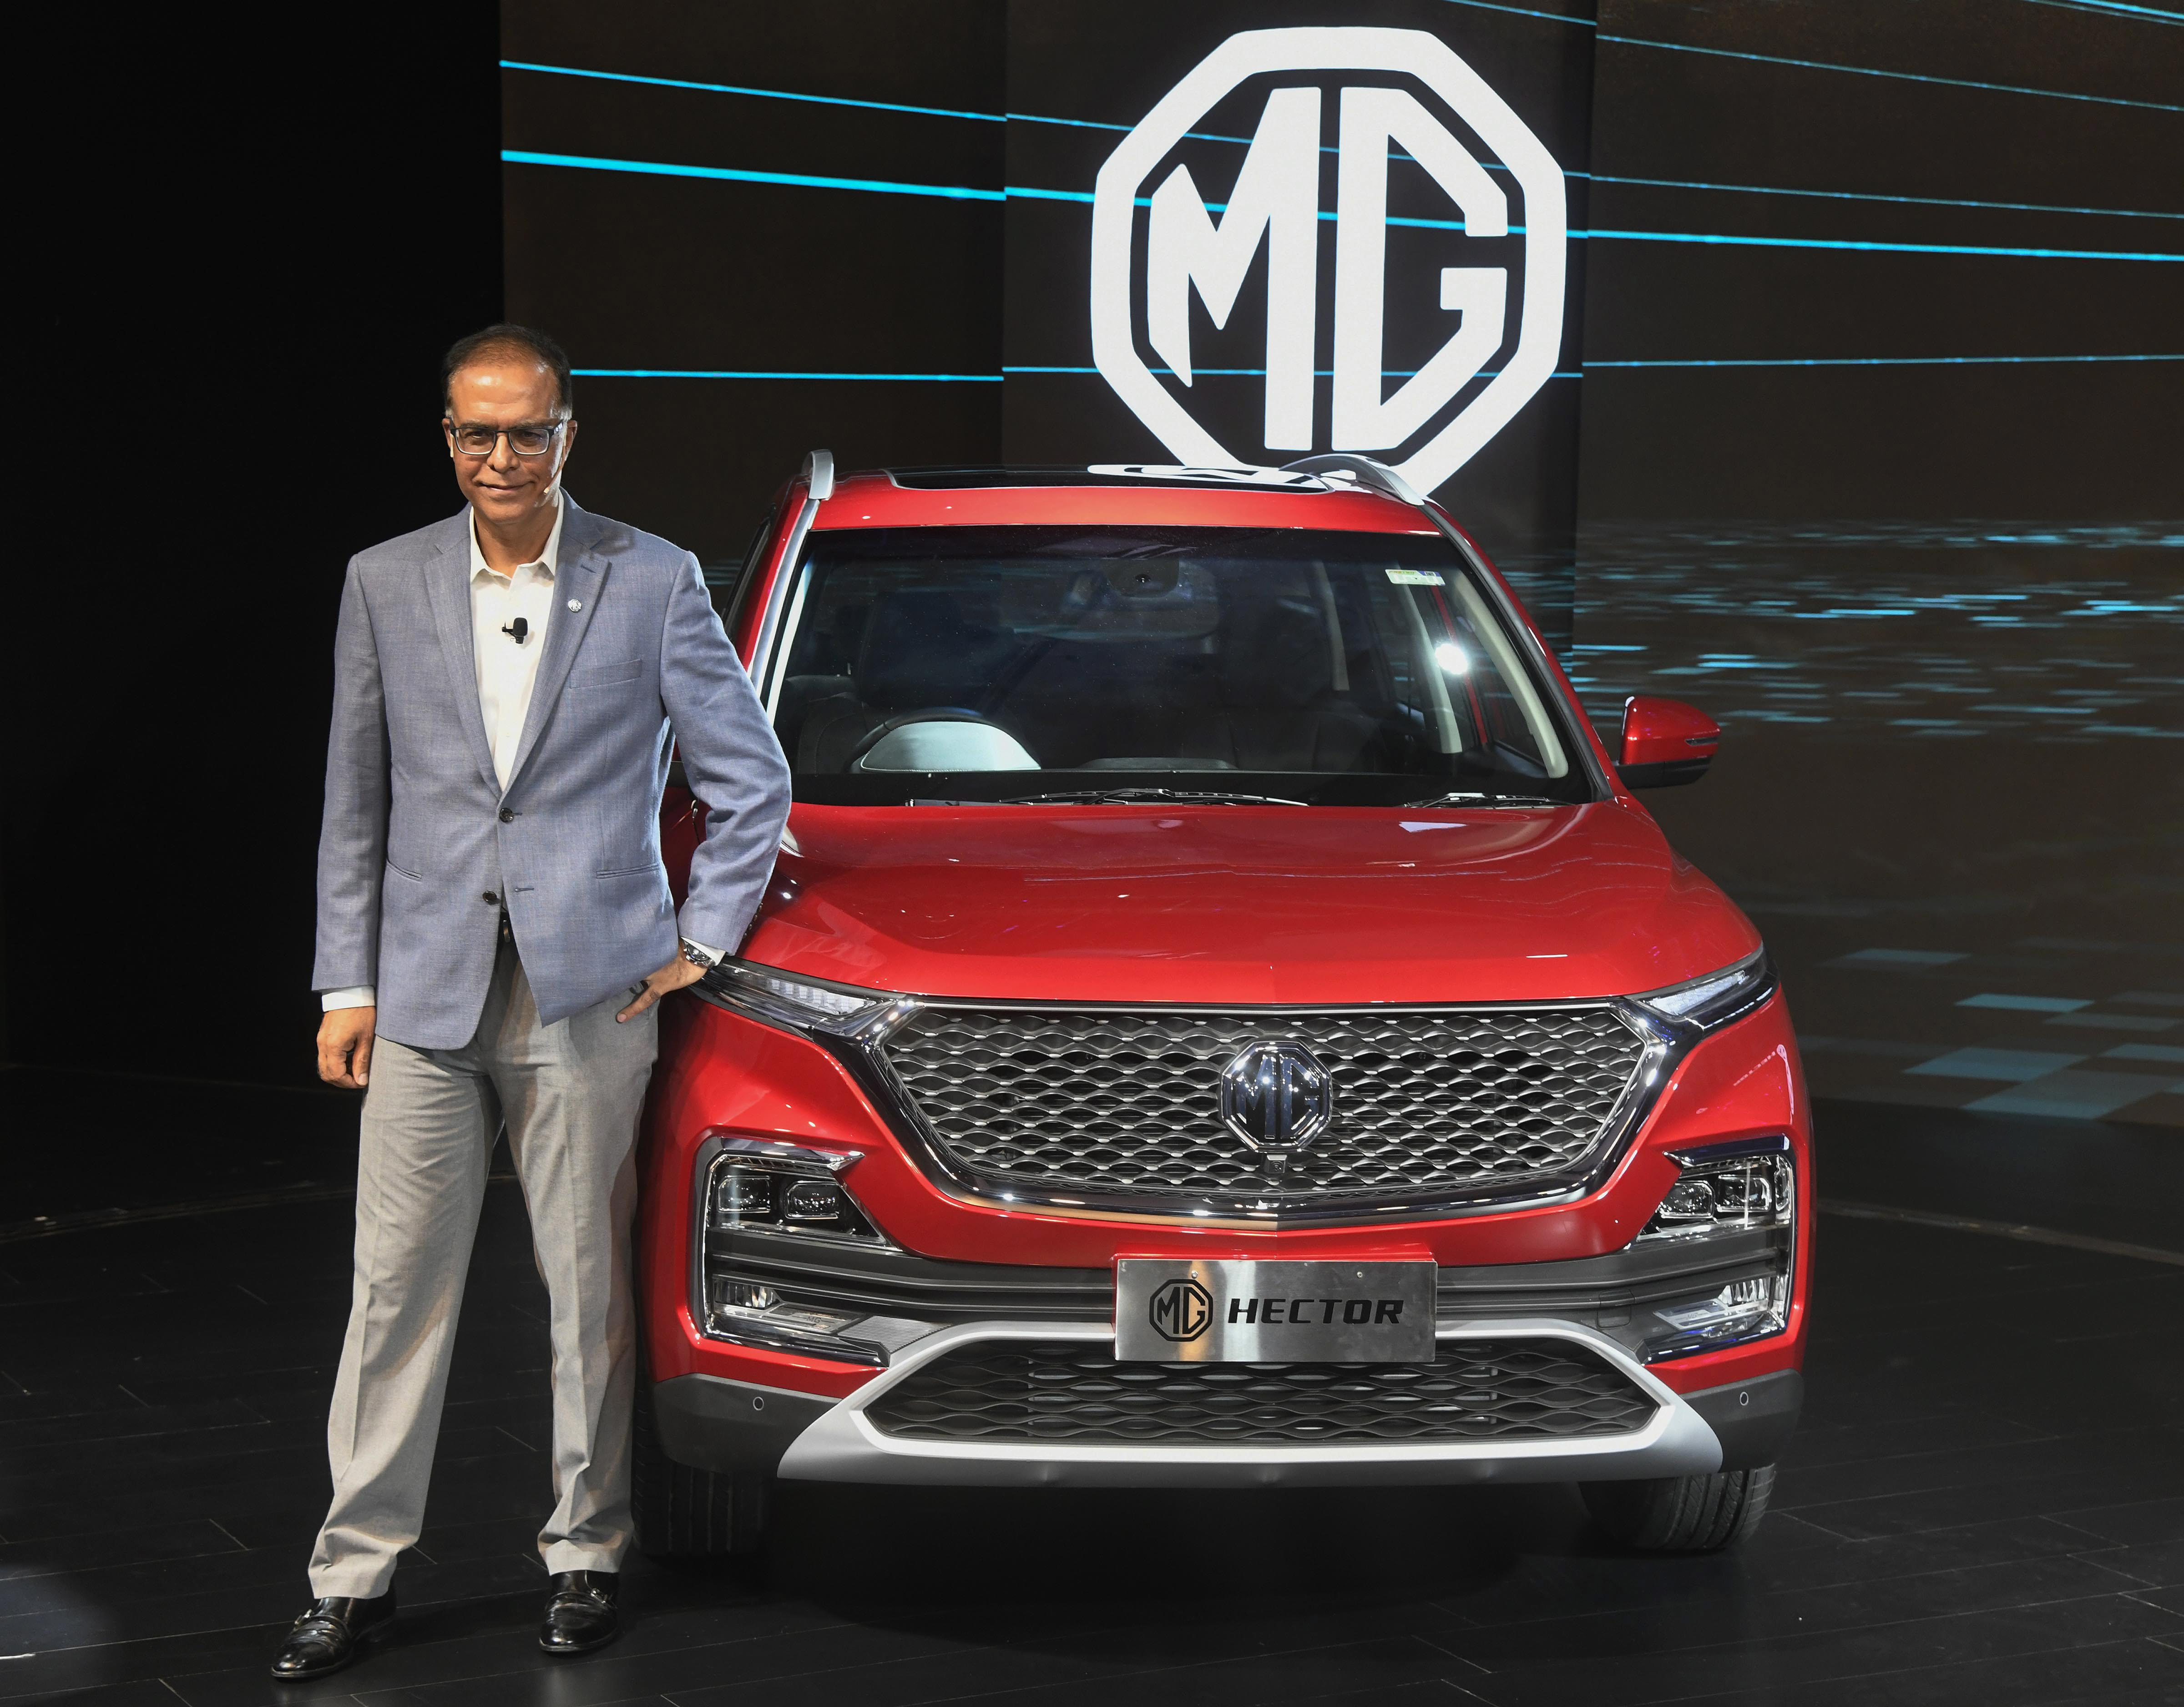 MG (Morris Garages) India President and Managing Director Rajeev Chaba poses next to company's Hector SUV during its launch, in Mumbai - PTI